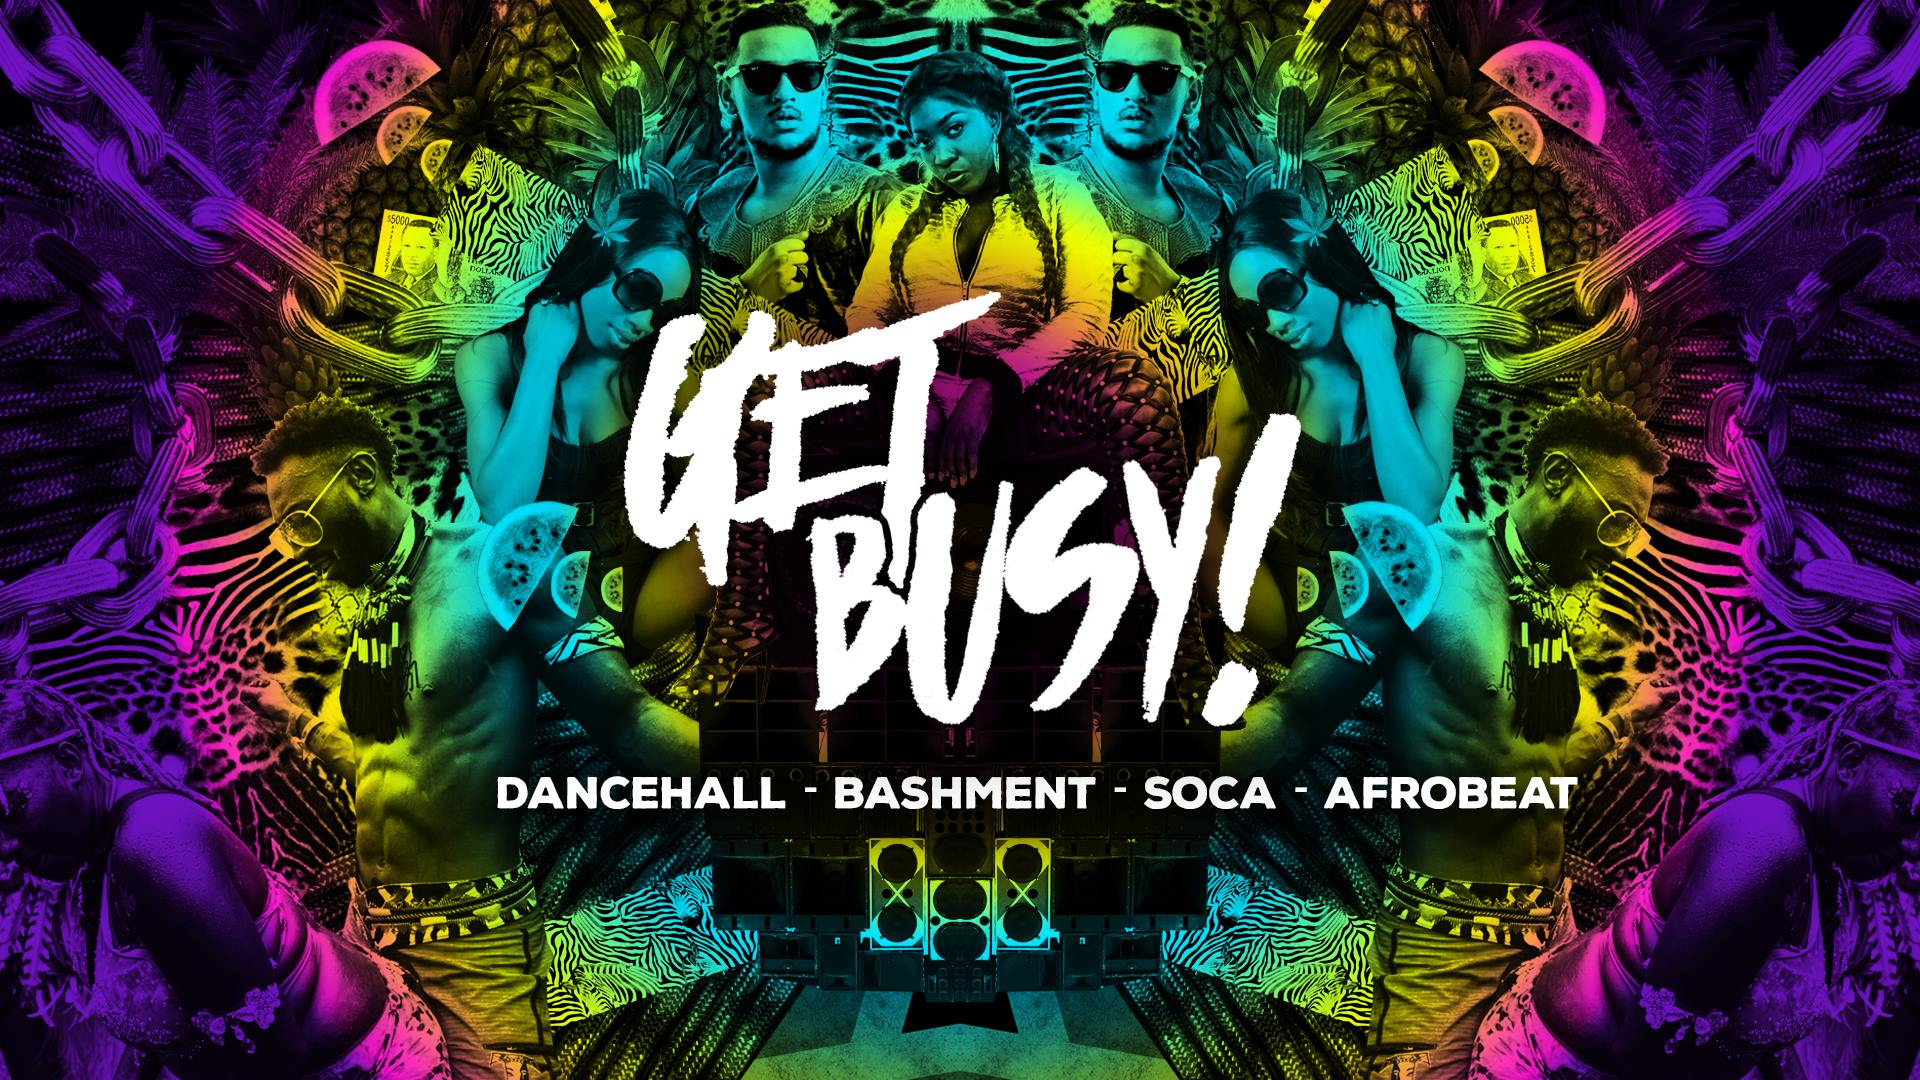 After another sell out event in July we're back at The Macbeth in August for another round of Dancehall, Afrobeat and Soca 🔥🔥🔥🔥🔥🔥  - - - - - - - - - - - - - - - - - - - - - - - - - - - - - - - - - - - - - - - - - - - - -  * * * Click 'Going' to hear about tickets * * *  - - - - - - - - - - - - - - - - - - - - - - - - - - - - - - - - - - - - - - - - - - - - -  We'll be playing the likes of: Vybz Kartel // Busy Signal // Wizkid // Machel Montano // Sean Paul // Capleton // Sizzla // Mr Vegas // Kojo Funds // J Hus // MoStack // Popcaan // Davido // Bunju Banton // Rupee // Mavado // Olamide // Wayne Wonder // Major Lazer // Demarco // Soca Boys // RDX // Kevin Lyttle // Fuse ODG // Beenie Man // Stylo G // Ice Prince // Tiwa Savage // Gyptian // Richie Spice // Proteje // Chronixx // Barington Levy // Charley Black // Spice // Buju Banton // Shy FX  Plus a few Hip Hop bangers thrown in.  Photos from our last event are here --> http://bit.ly/2kEYer6   Lets party x  🇯🇲 🇦🇬 🇧🇧 🇩🇴 🇧🇸 🇳🇬 🇹🇹 🇬🇧  £5 before 10:30pm - £7 after